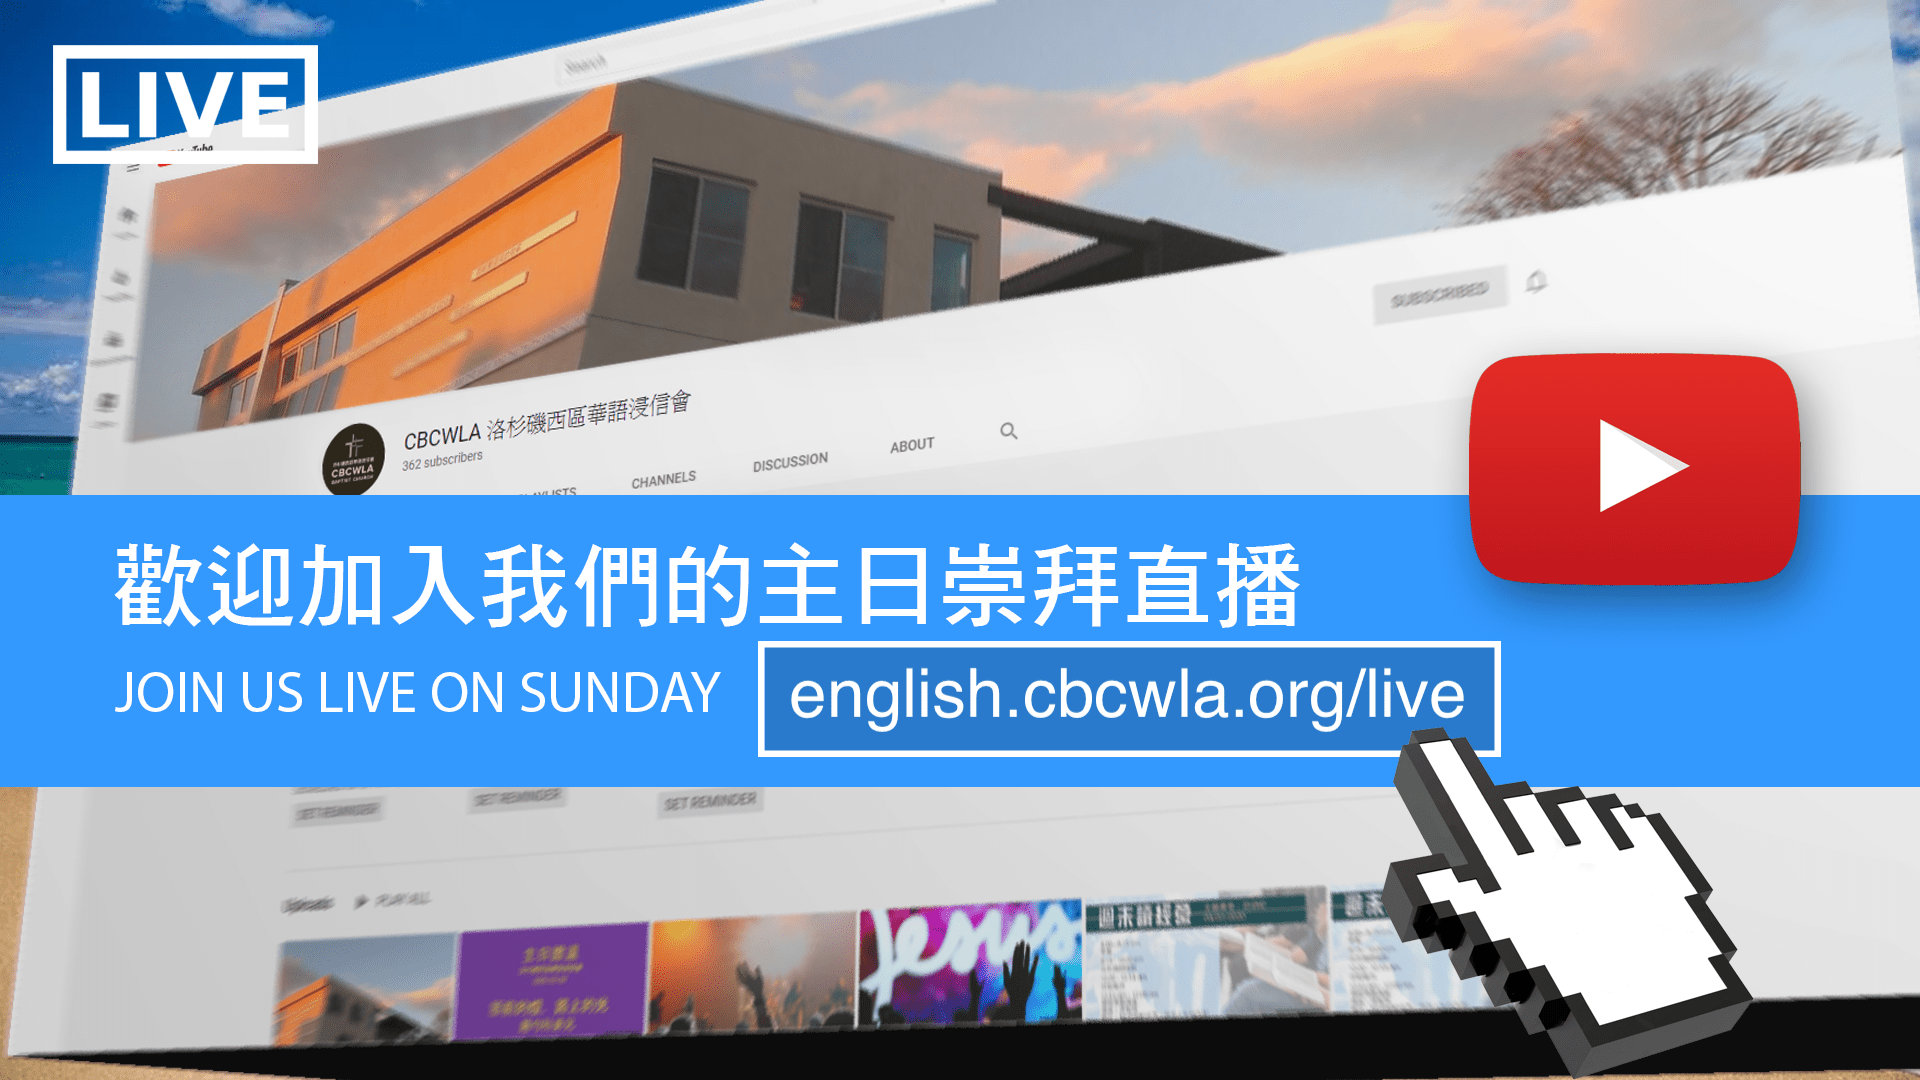 Join us on Sunday at english.cbcwla.org/live